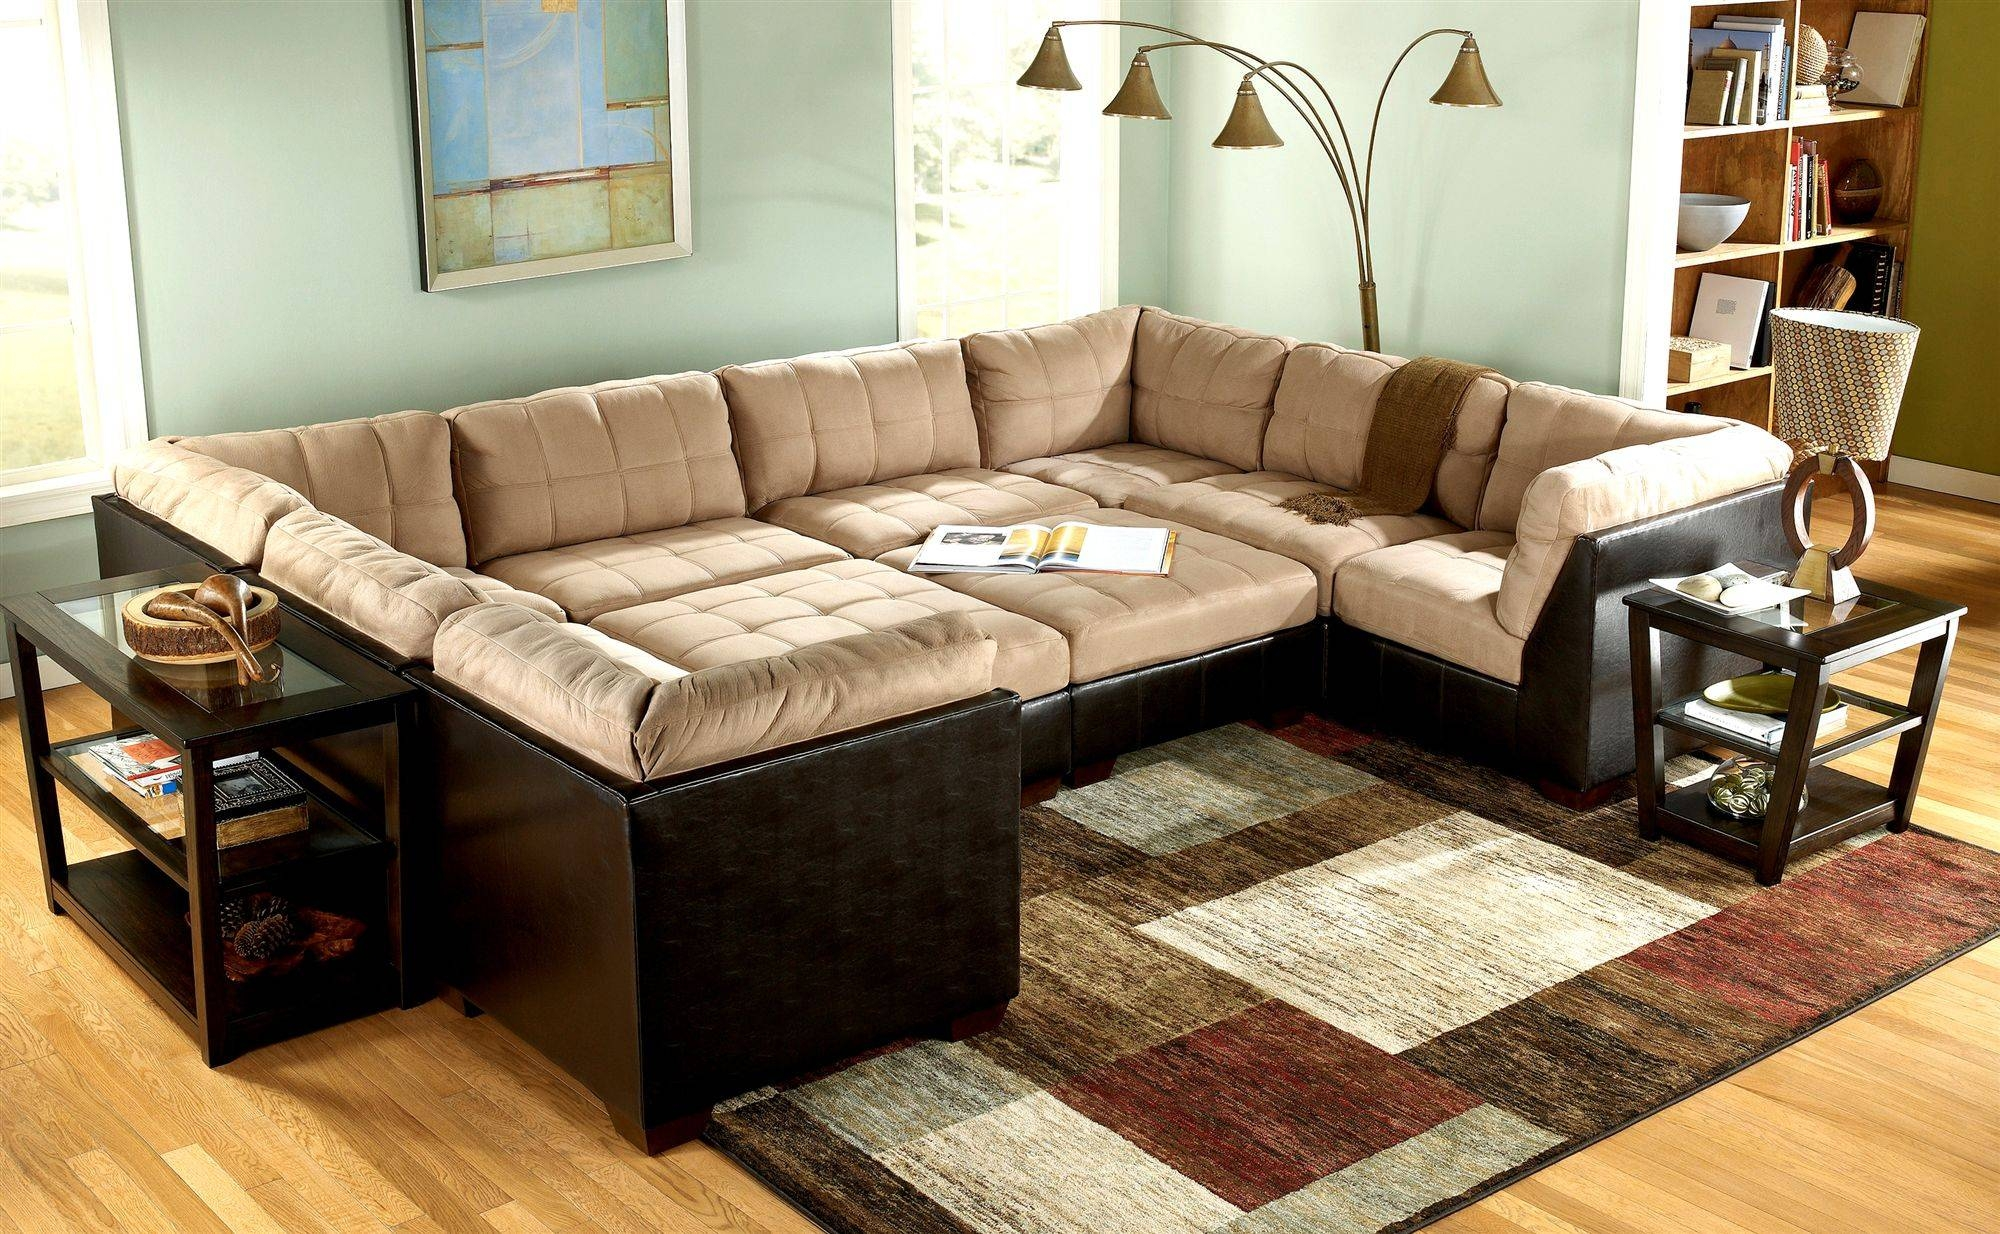 Cheap Sectional Sofas For Sale pertaining to Cool Cheap Sofas (Image 5 of 30)